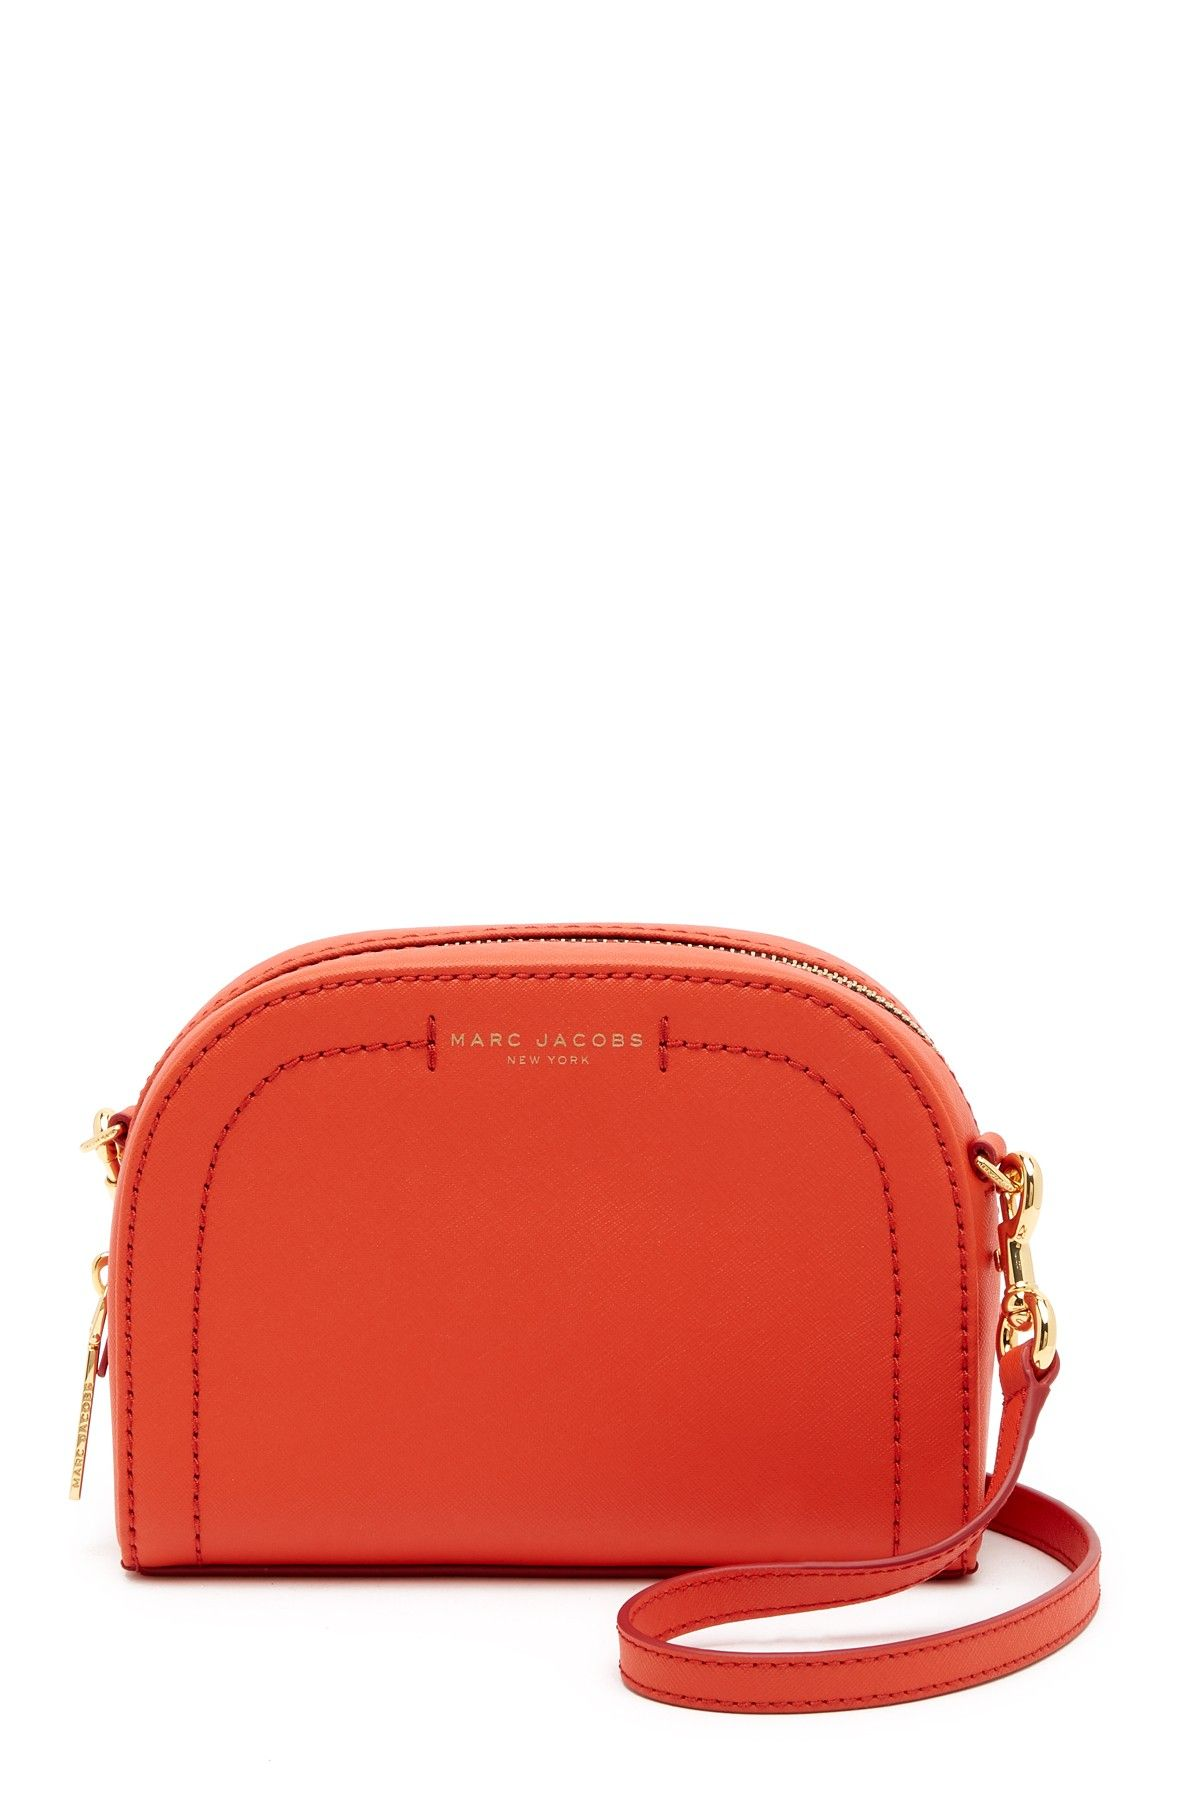 7812fd9ac6ad Marc Jacobs | Playback Leather Crossbody Bag | Nordstrom Rack Leather  Crossbody Bag, Michael Kors